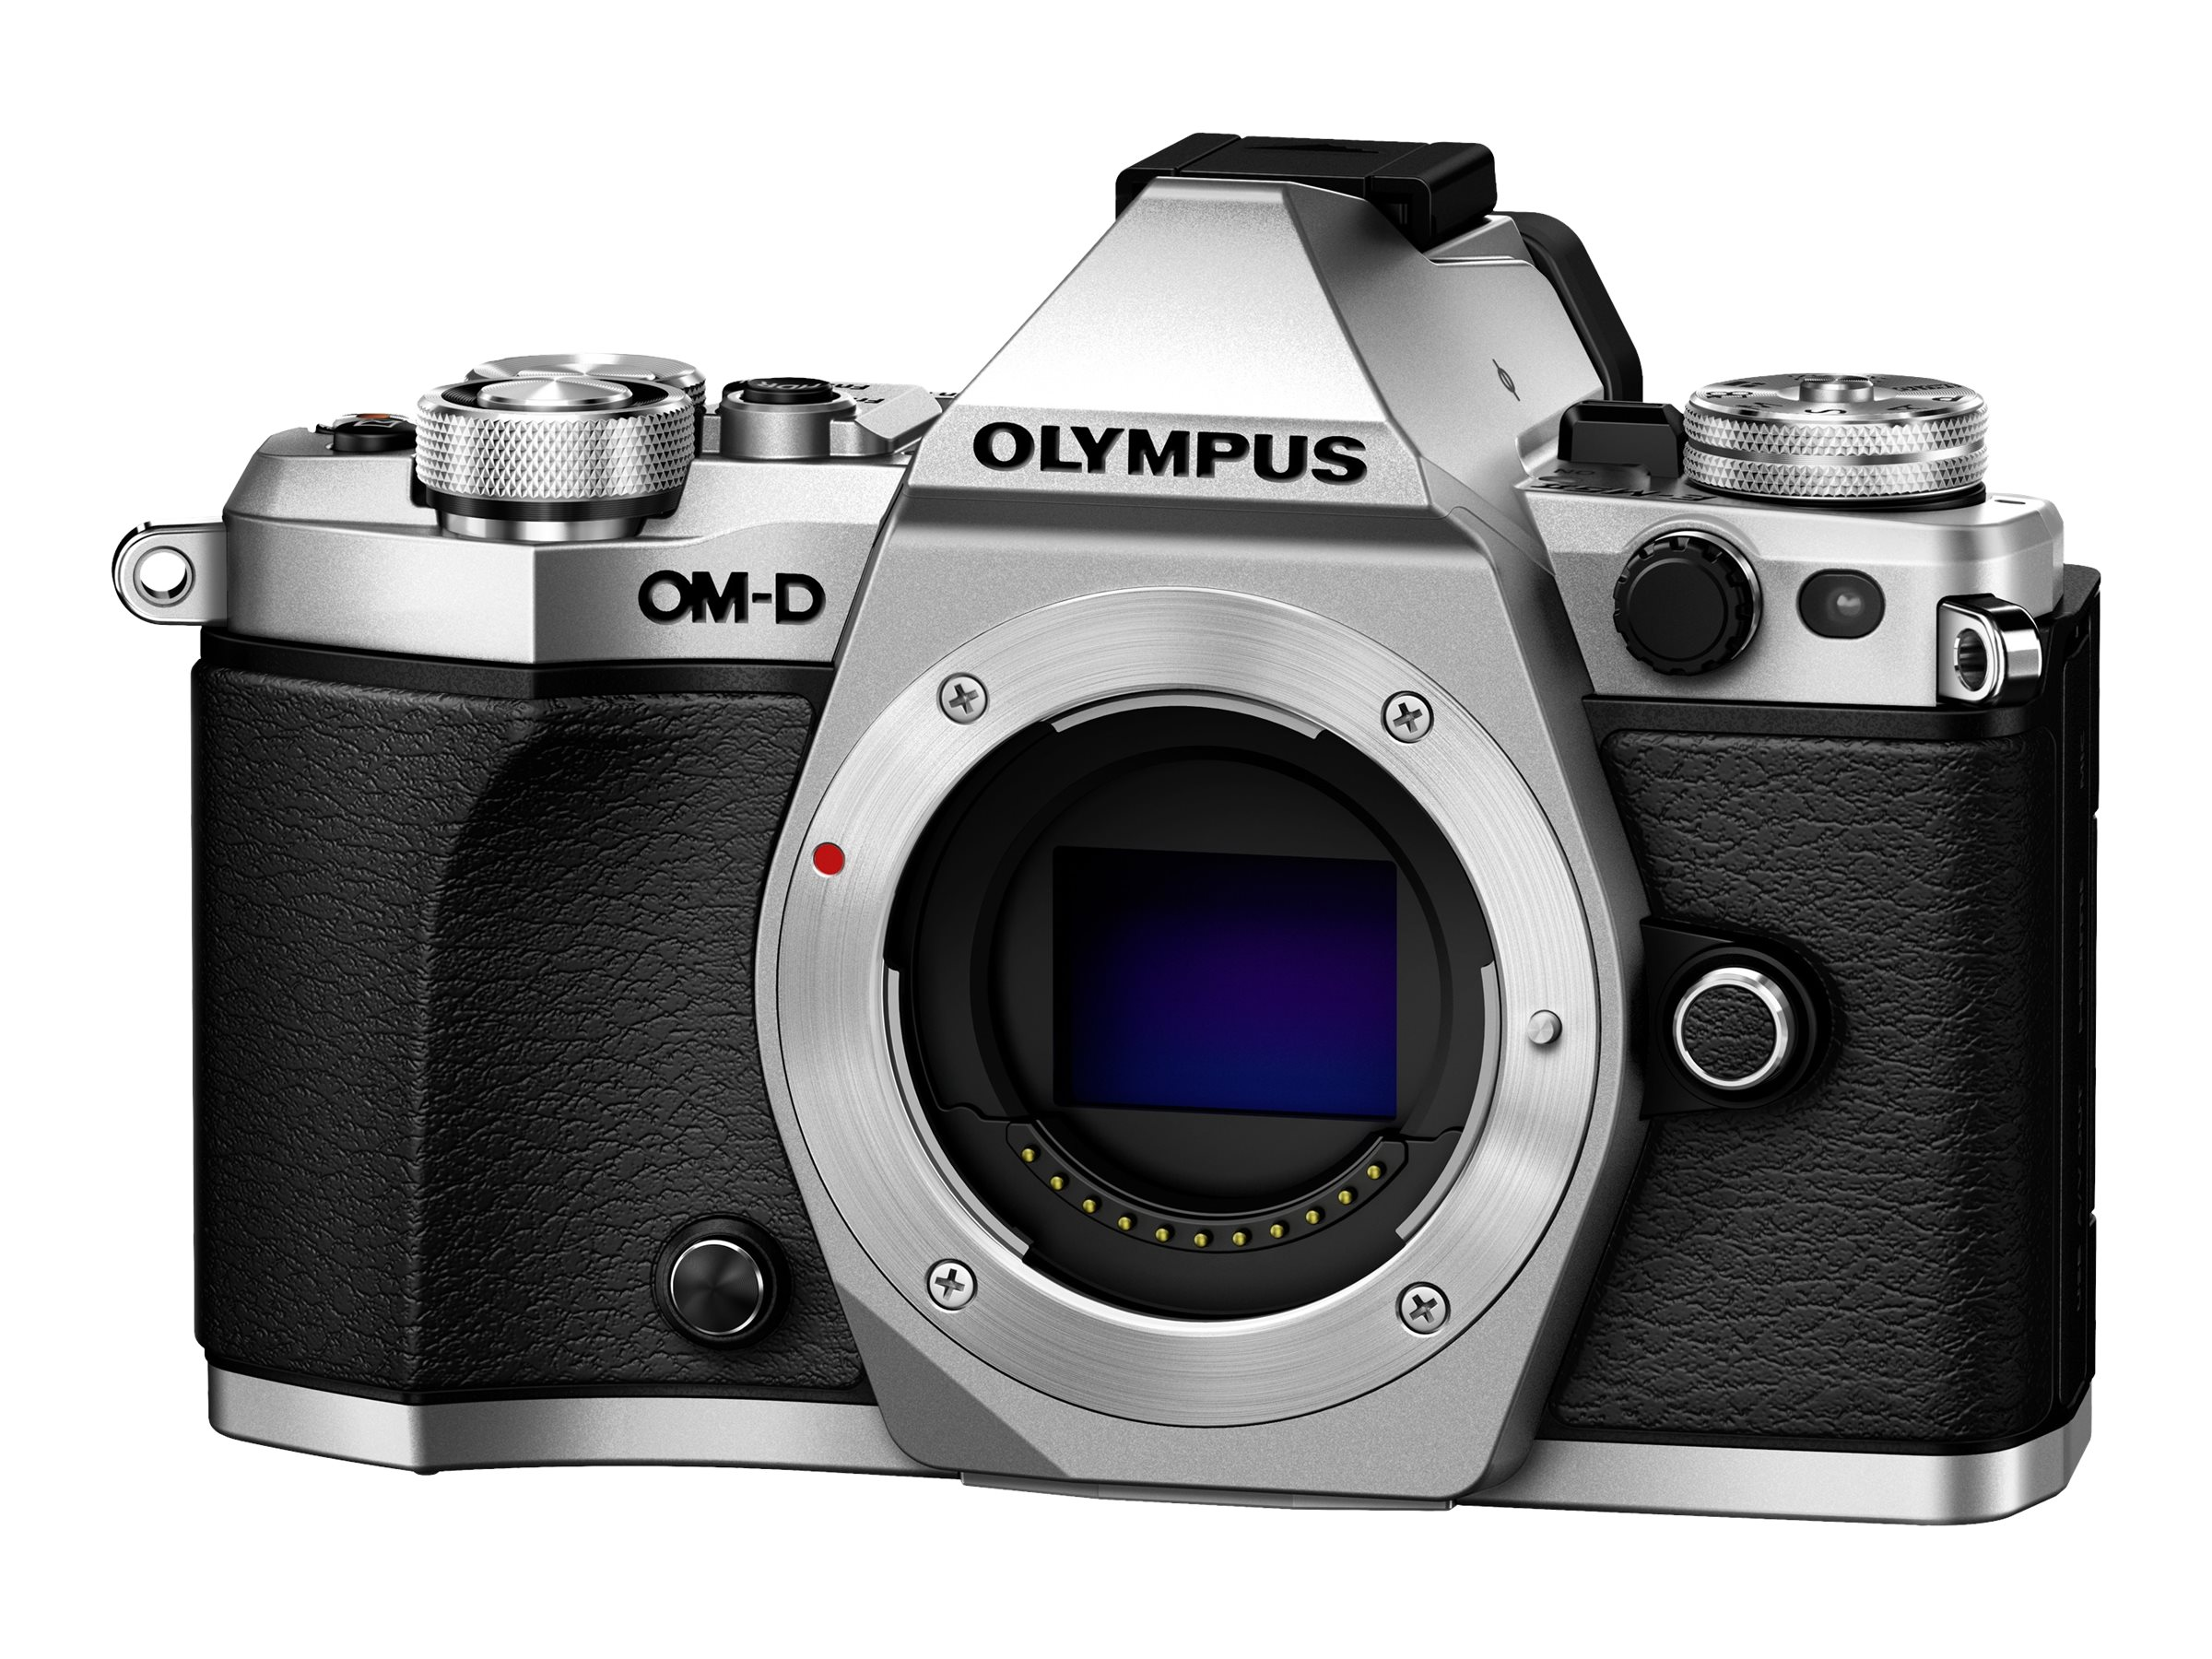 Olympus OM-D E-M5 Mark II Mirrorless Micro Four Thirds Digital Camera, Silver (Body Only), V207040SU000, 18478141, Cameras - Digital - SLR